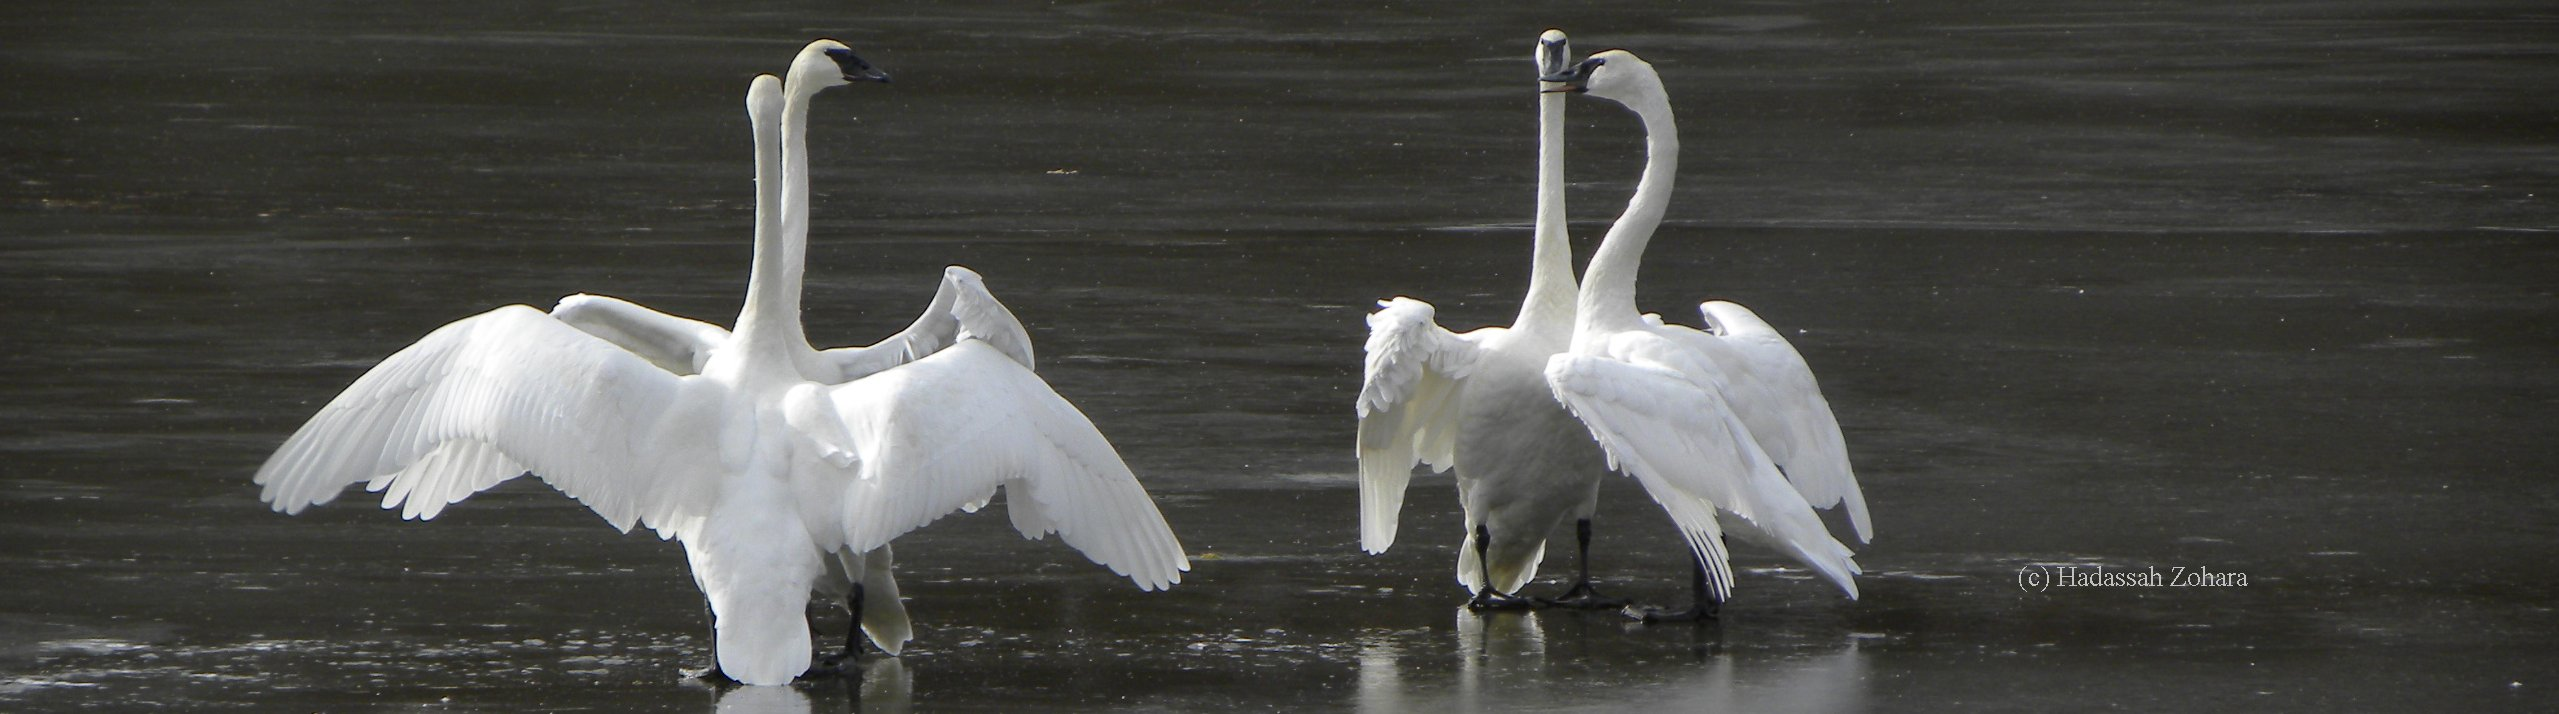 The Trumpeter Swan Society Blog has insights, commentary, and thoughtful discussion about trumpeter swan issues and activities